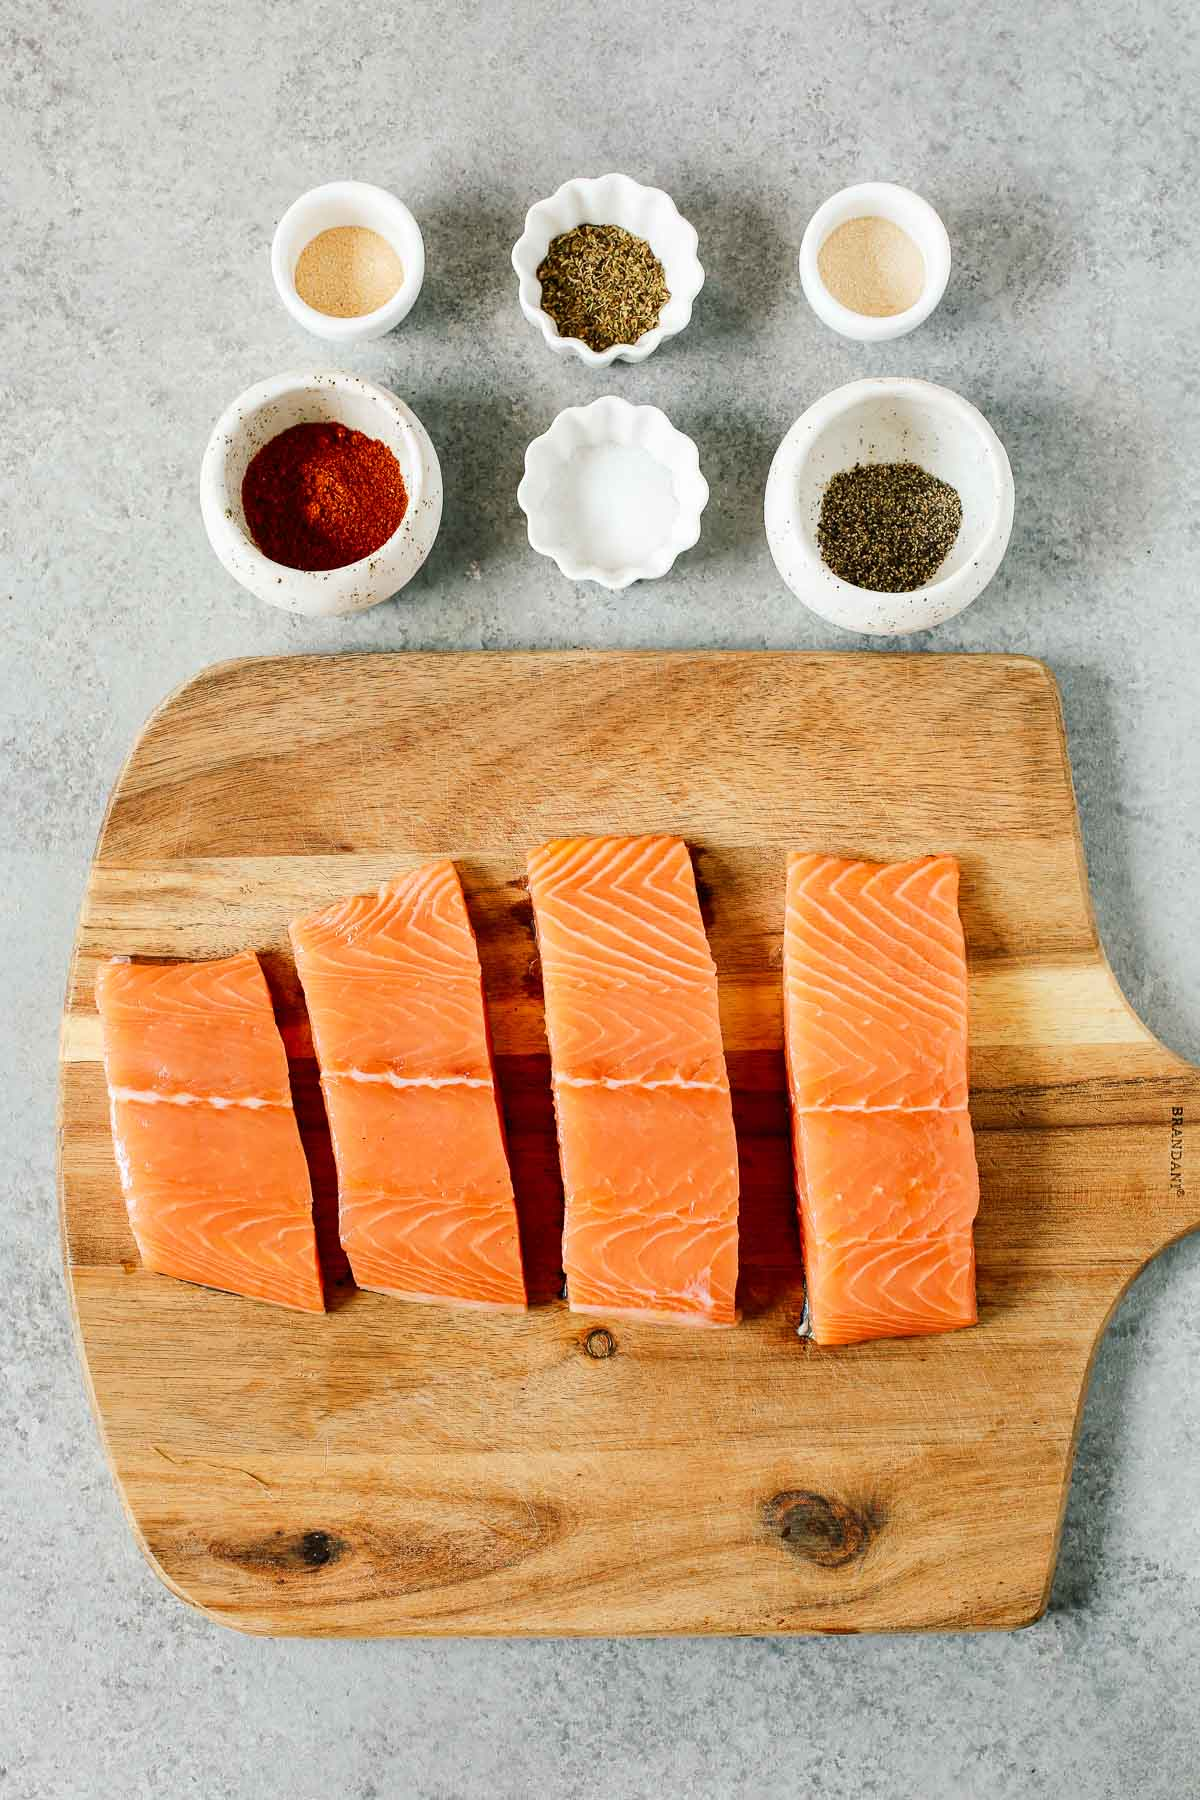 overhead image: 4 raw fish fillets and 6 small prep bowls with spices to make a blackened salmon recipe